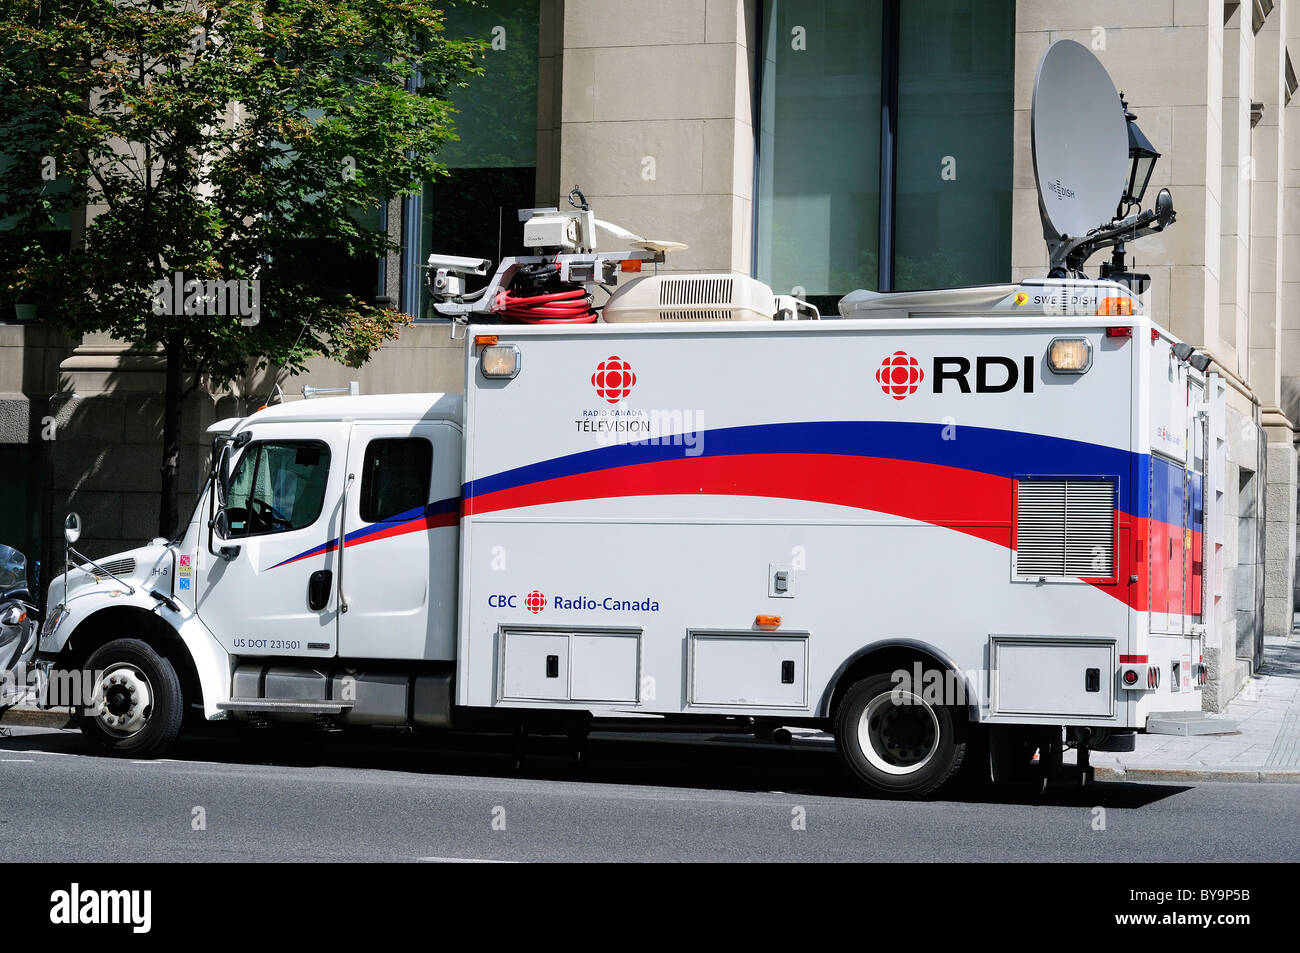 Outside Broadcast Truck Of The Canadian National T V Company The Cbc Stock Photo Alamy